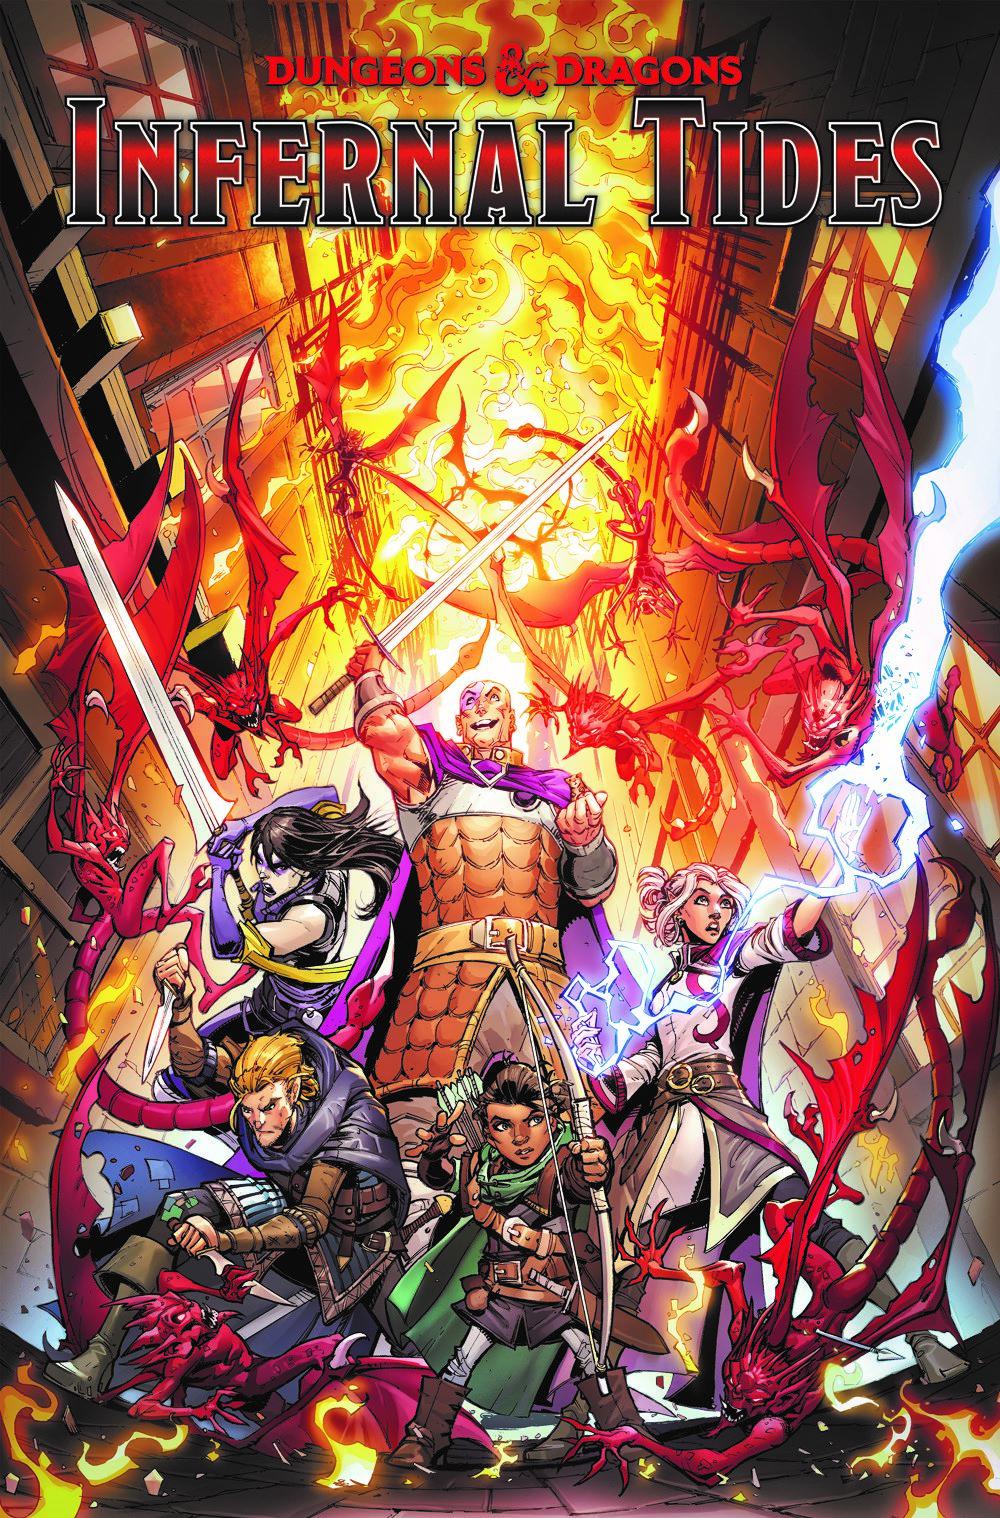 DnD_InfernalTides_TPB-cover ComicList Previews: DUNGEONS AND DRAGONS INFERNAL TIDES TP